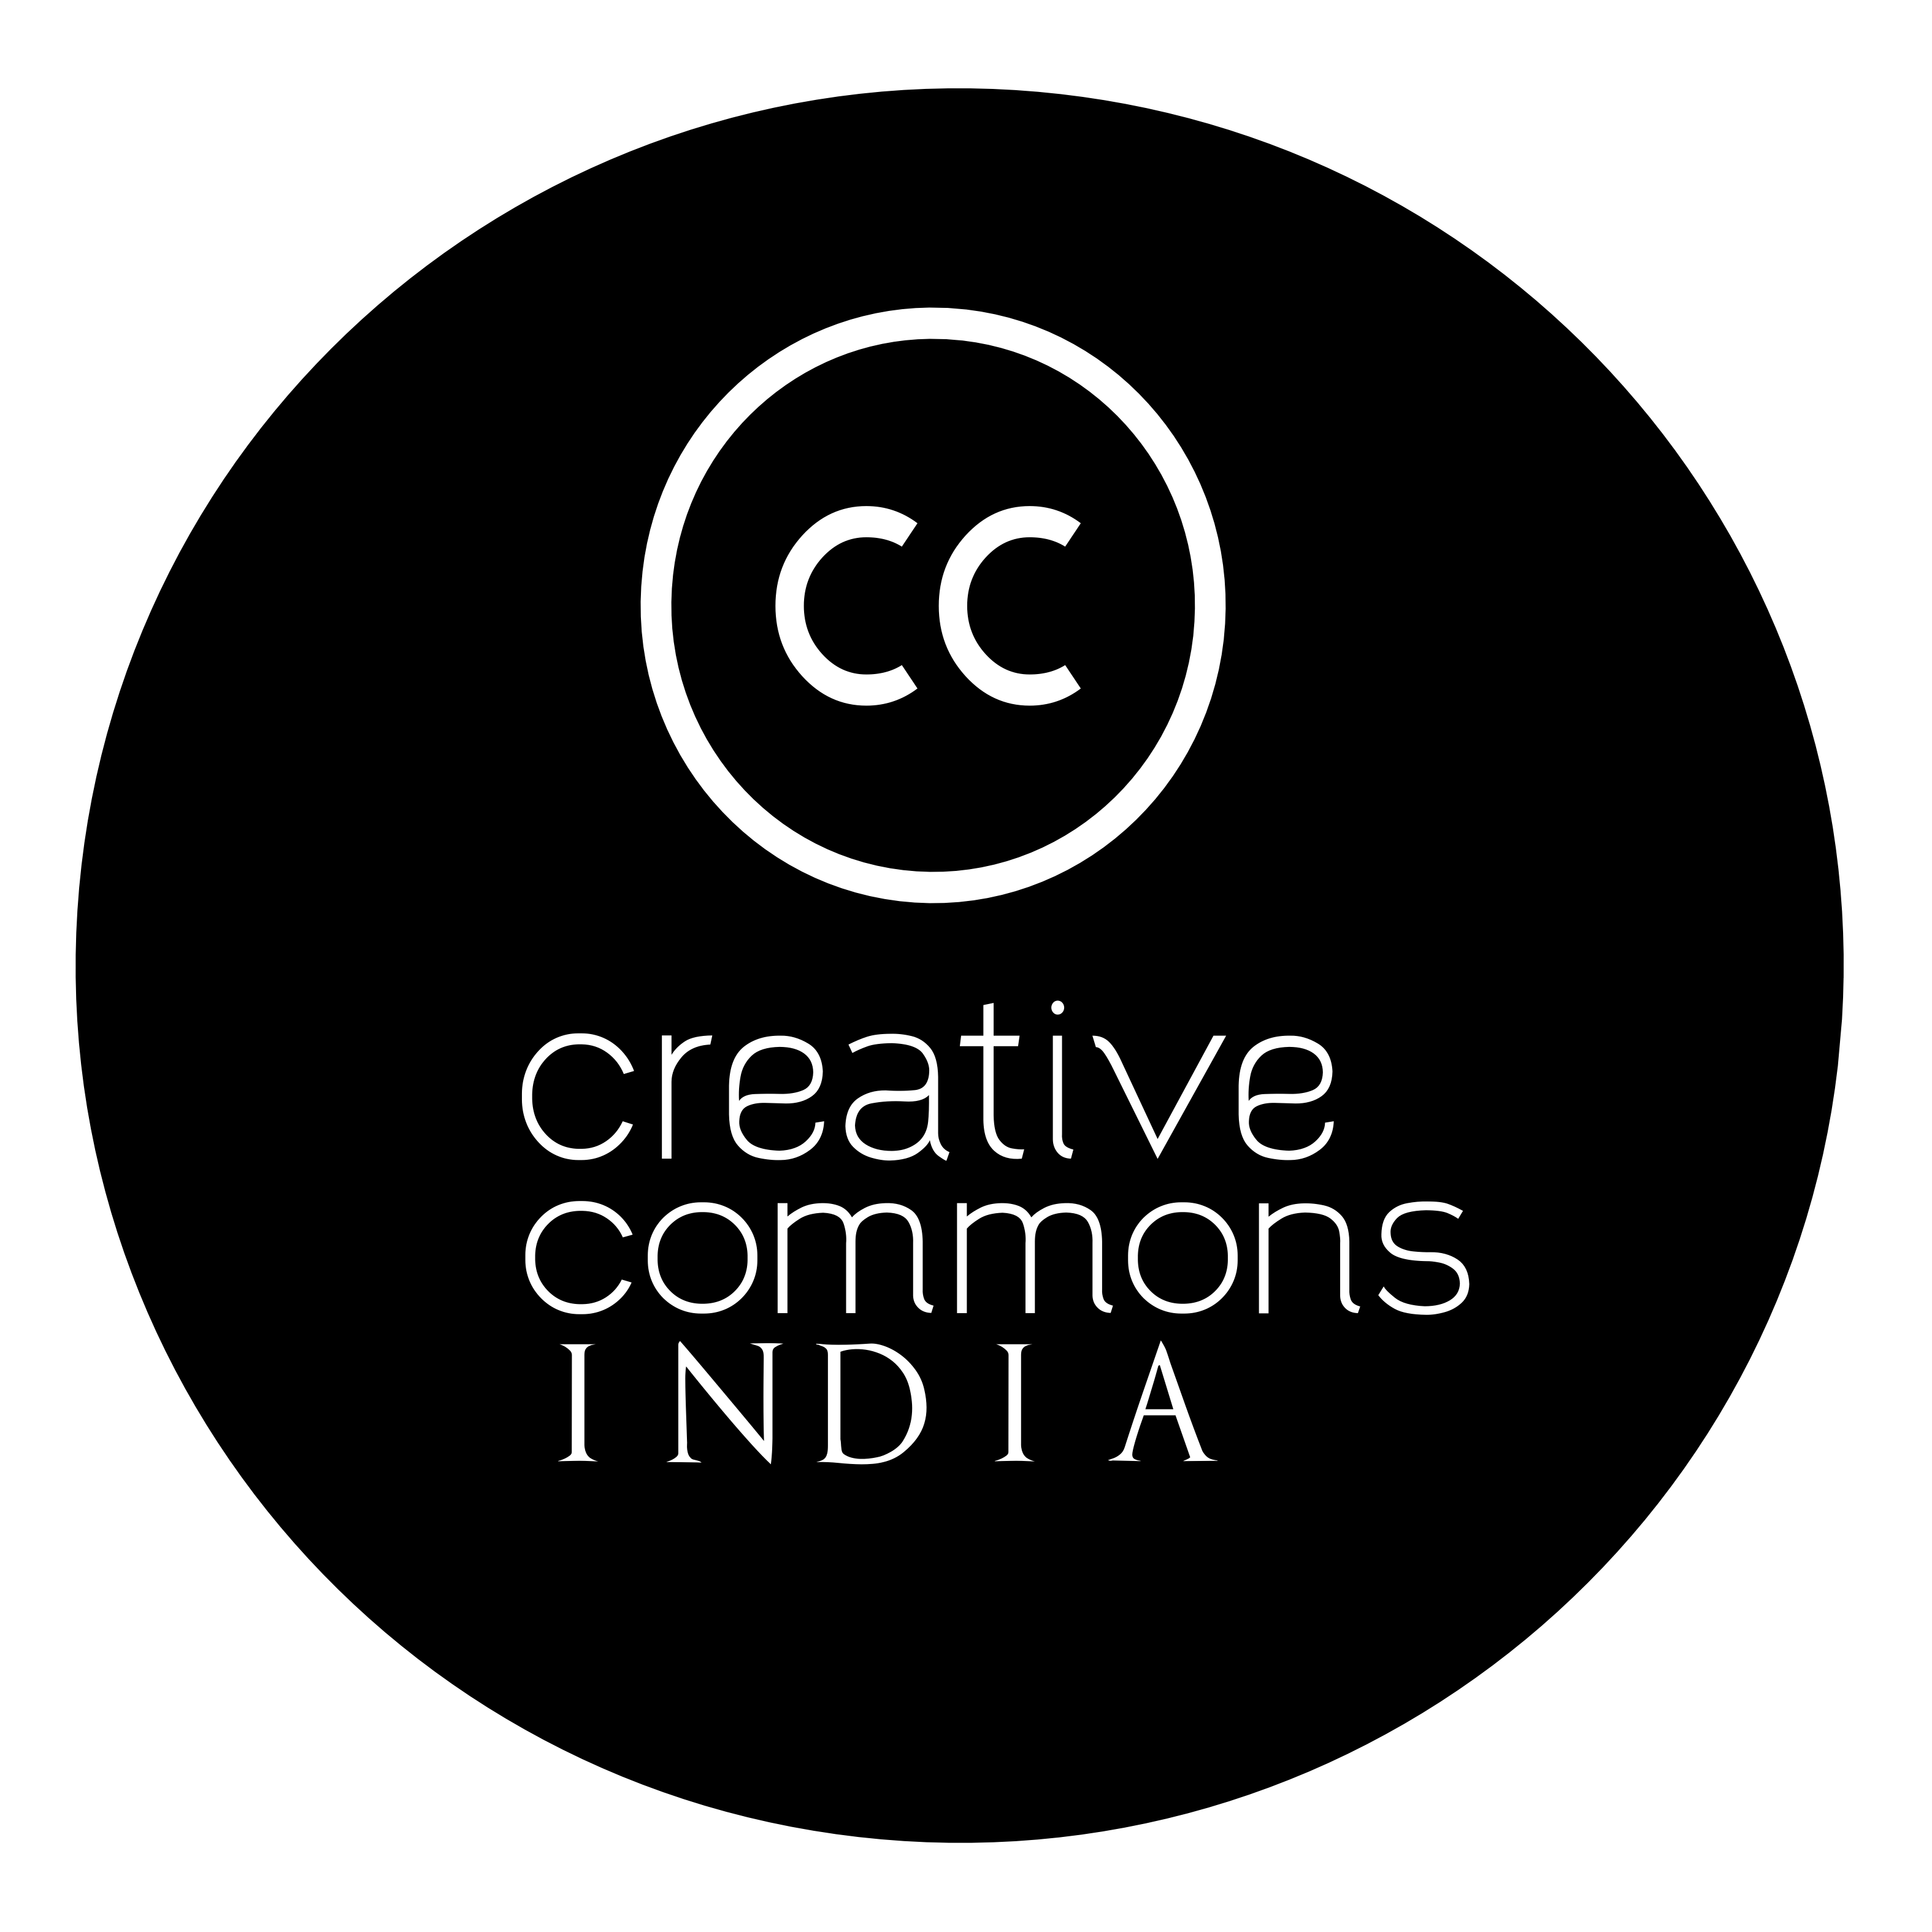 creative commons Creative commons provides copyright licences to facilitate sharing and reuse of creative content.